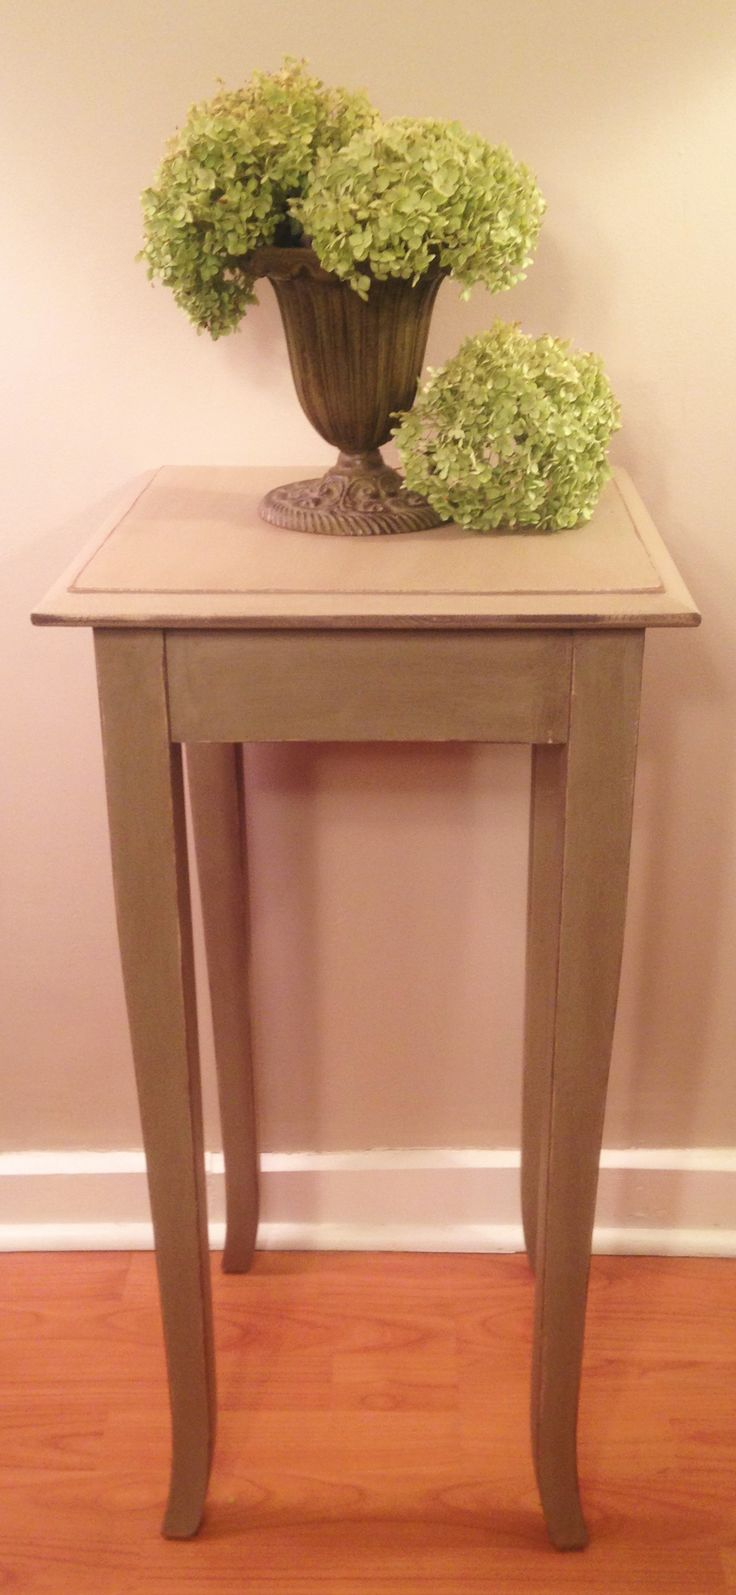 NEED A TOUCH OF COLOR...?   This tall accent table has just that.   Very attractive in a khaki green with distressed edges and finished in an Early American stain. Her slender but curvy legs give her a feminine touch!